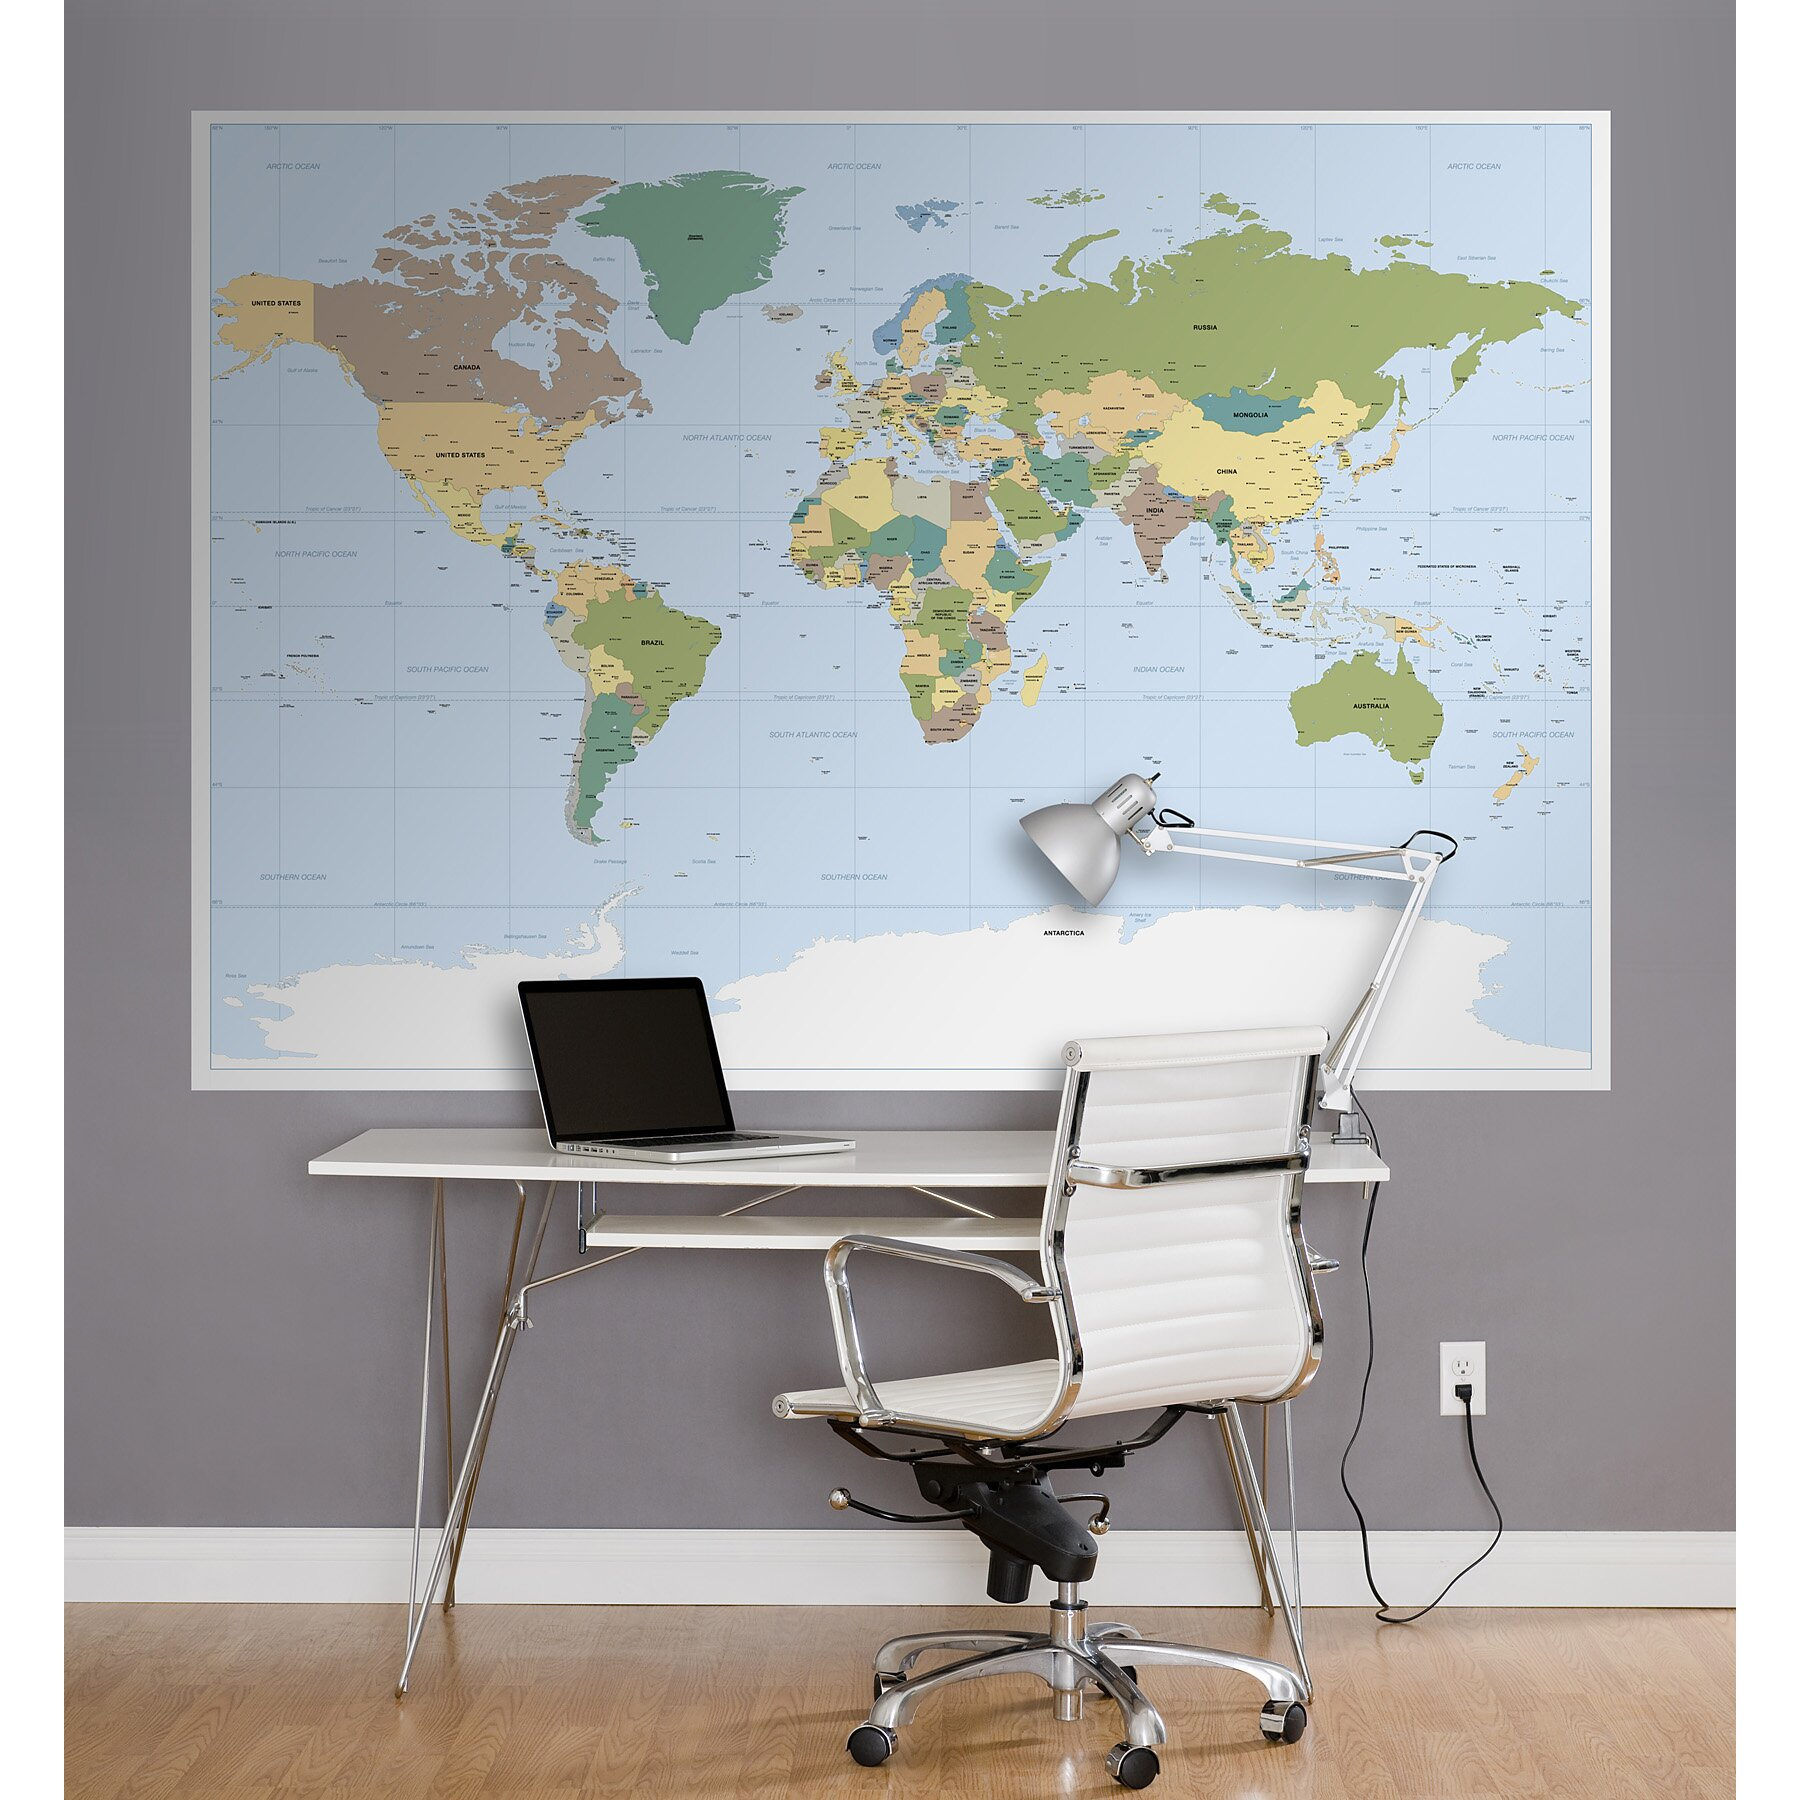 Brewster home fashions komar world map wall mural for Brewster home fashions wall mural